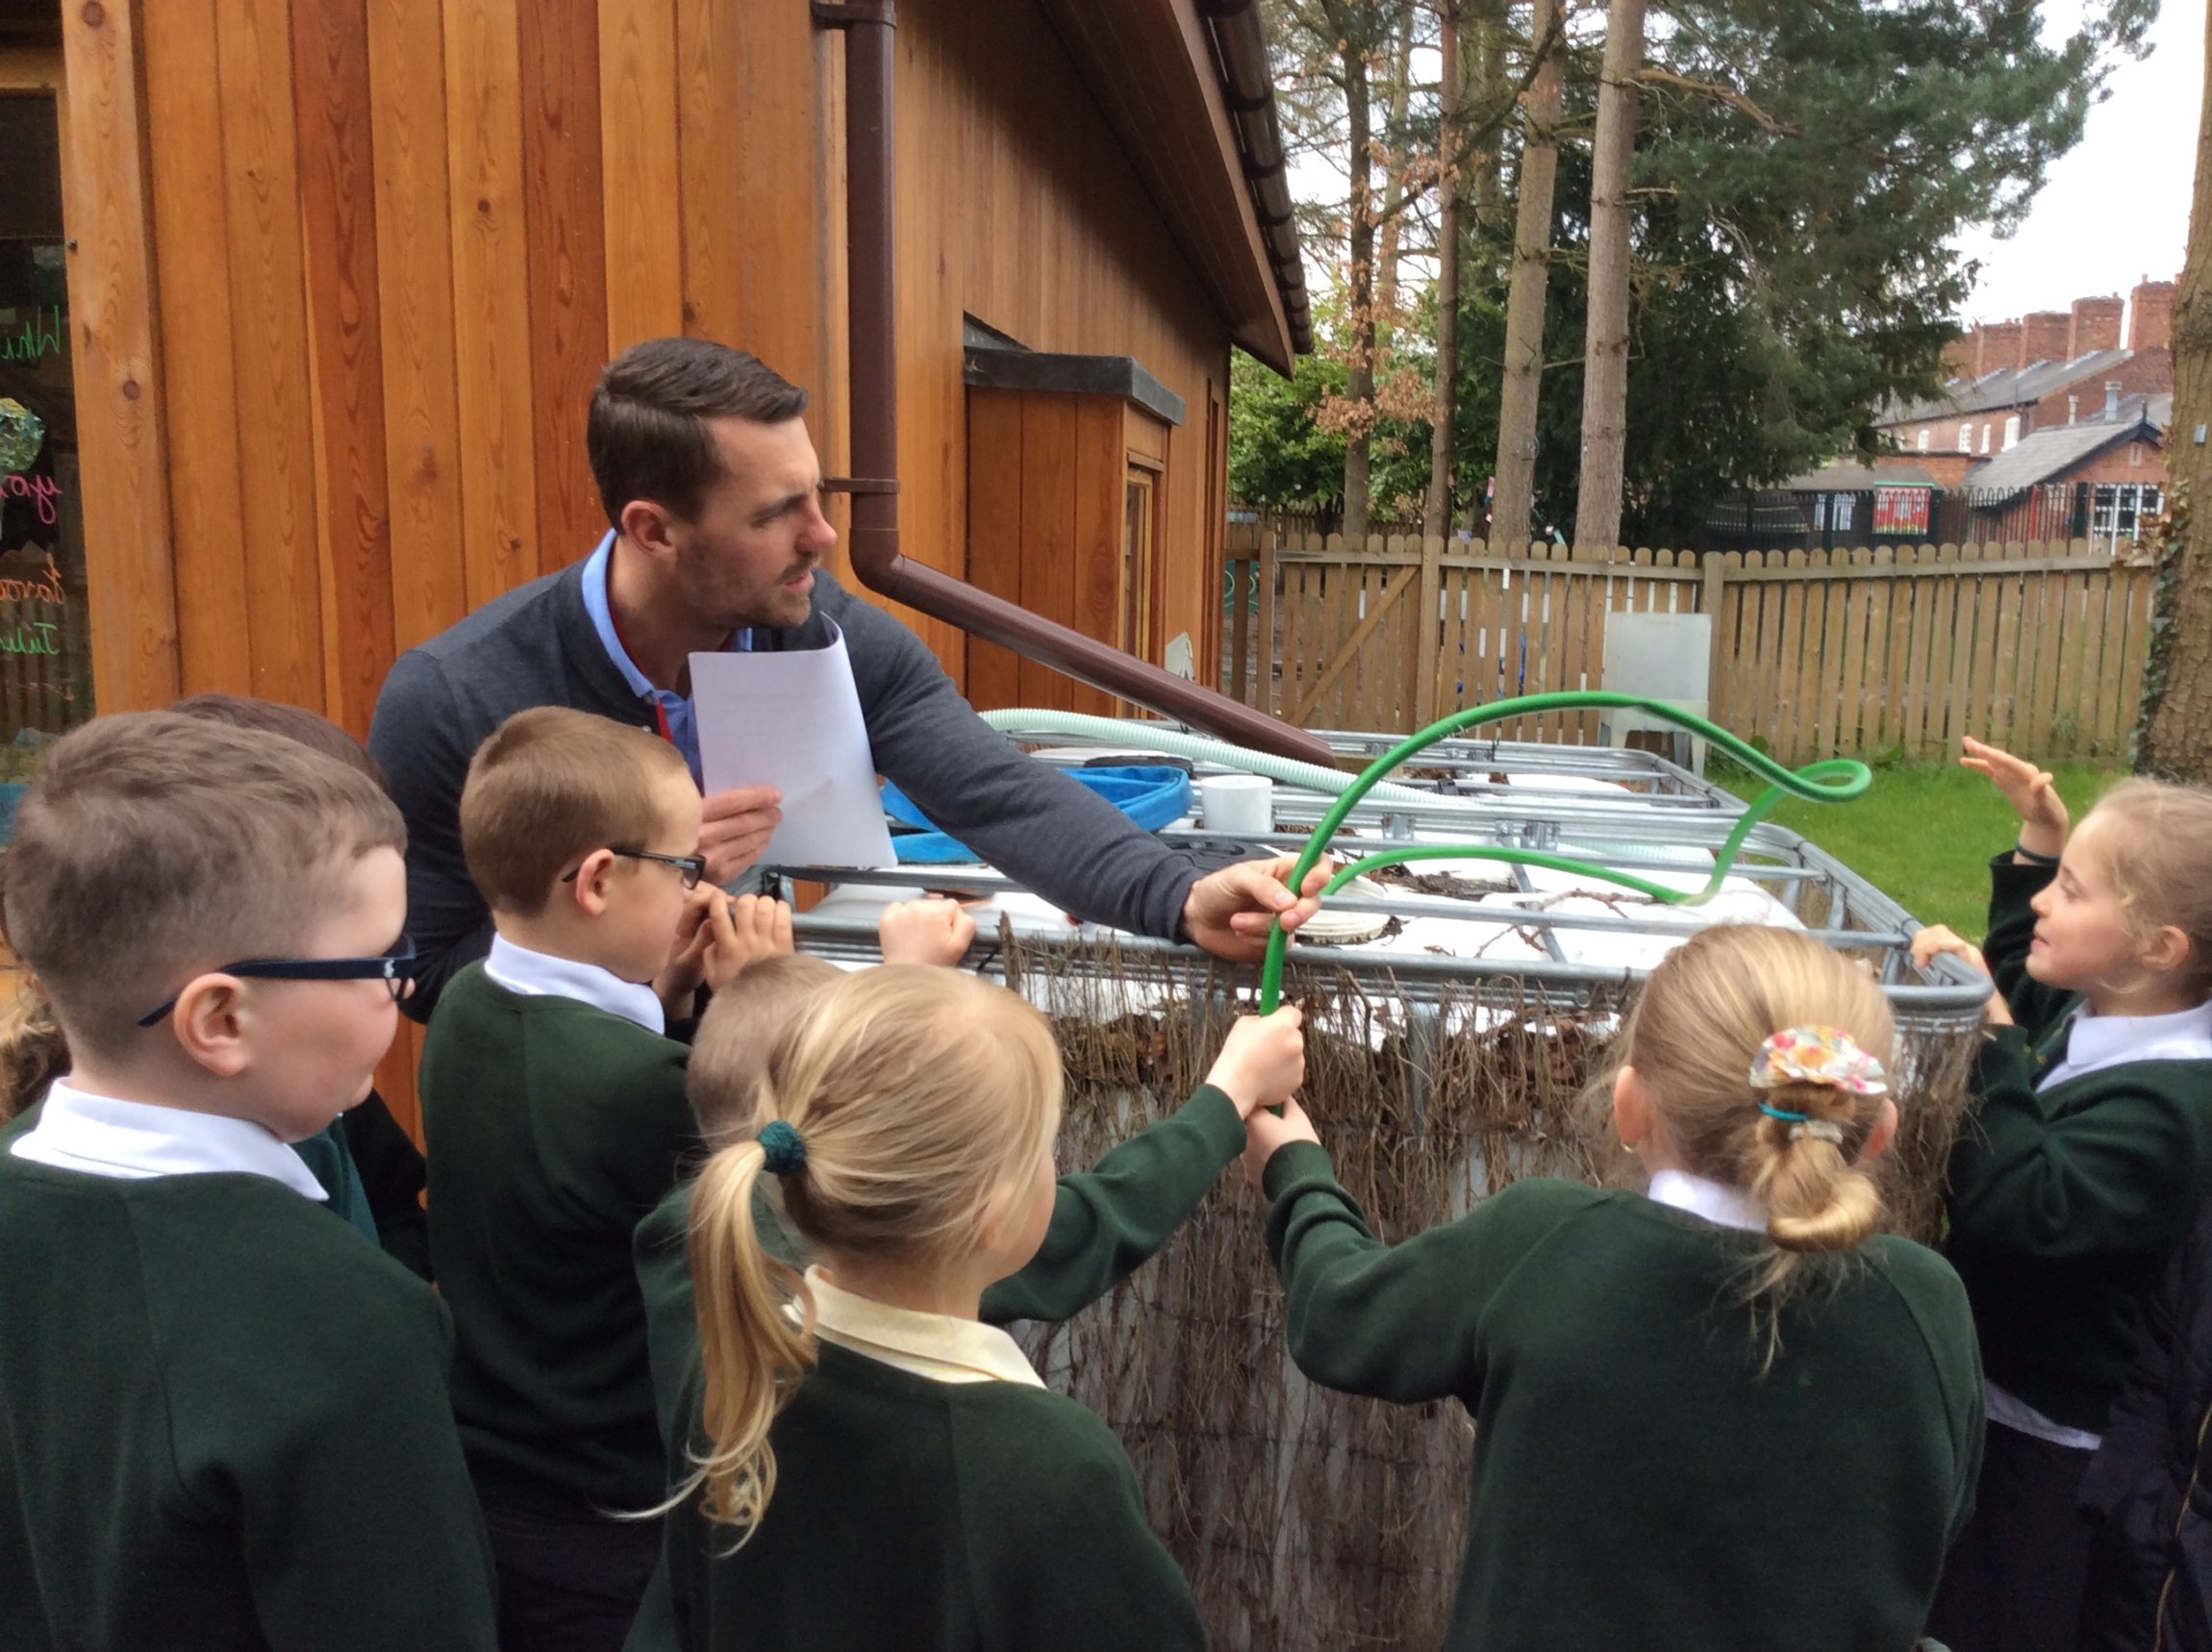 Outdoor science workshop case study - April 2016